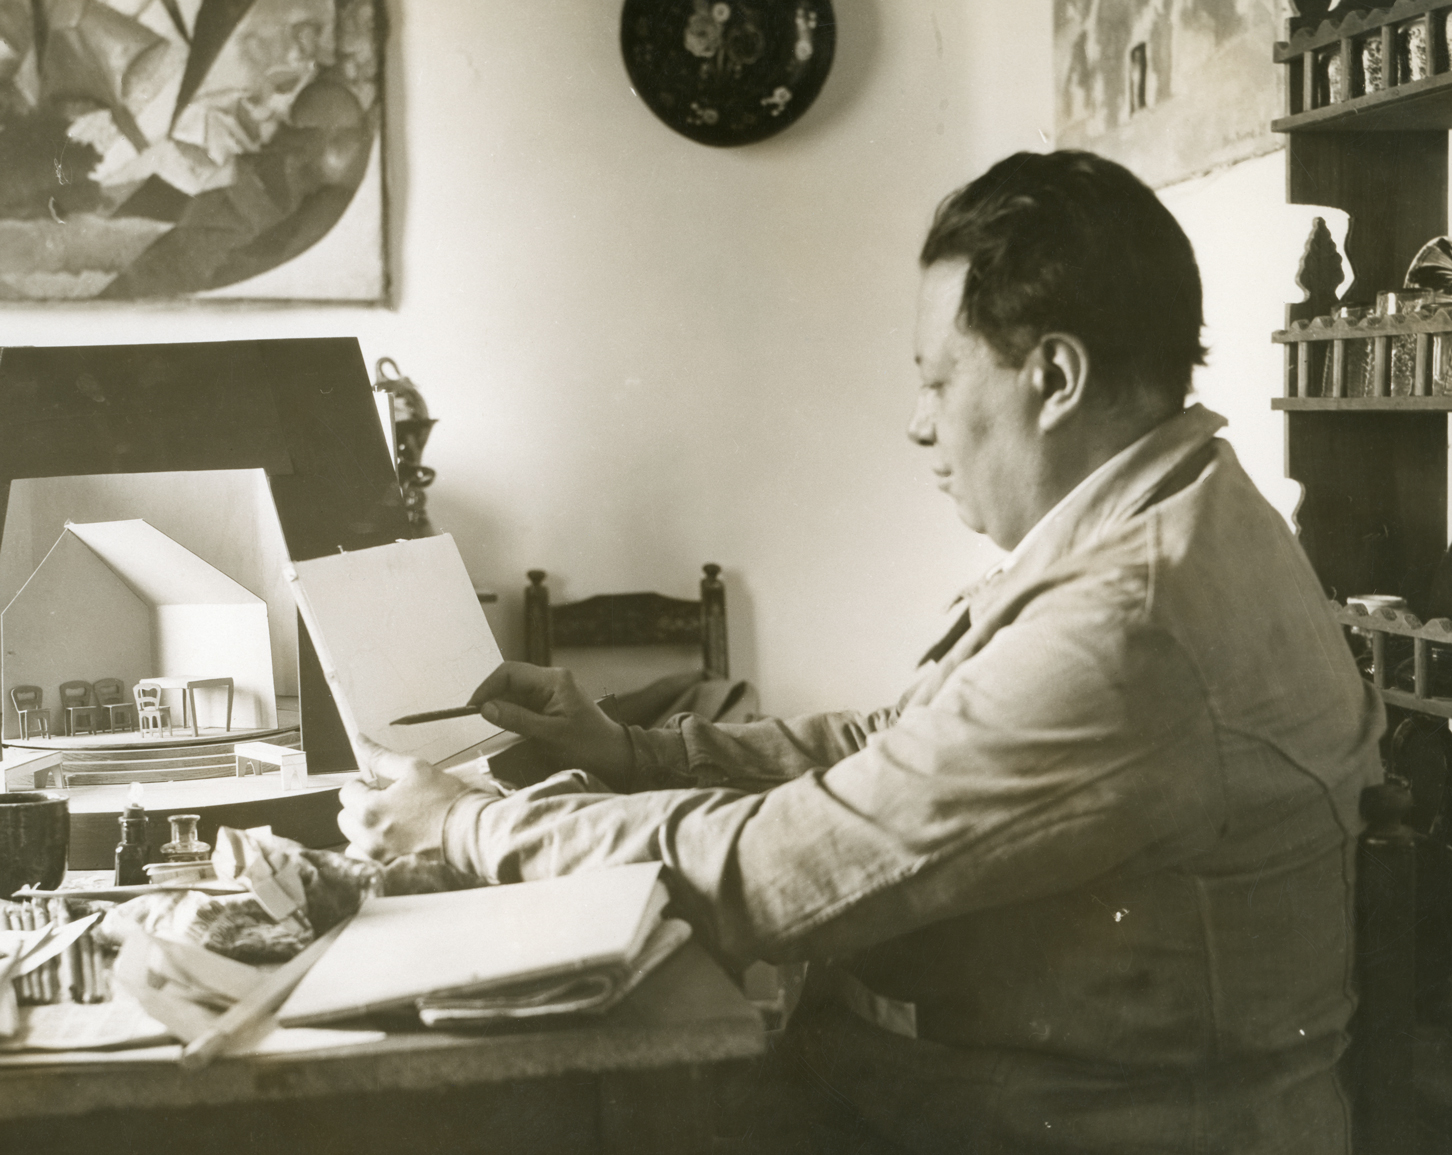 abbearchive_778-mexico-diego-rivera